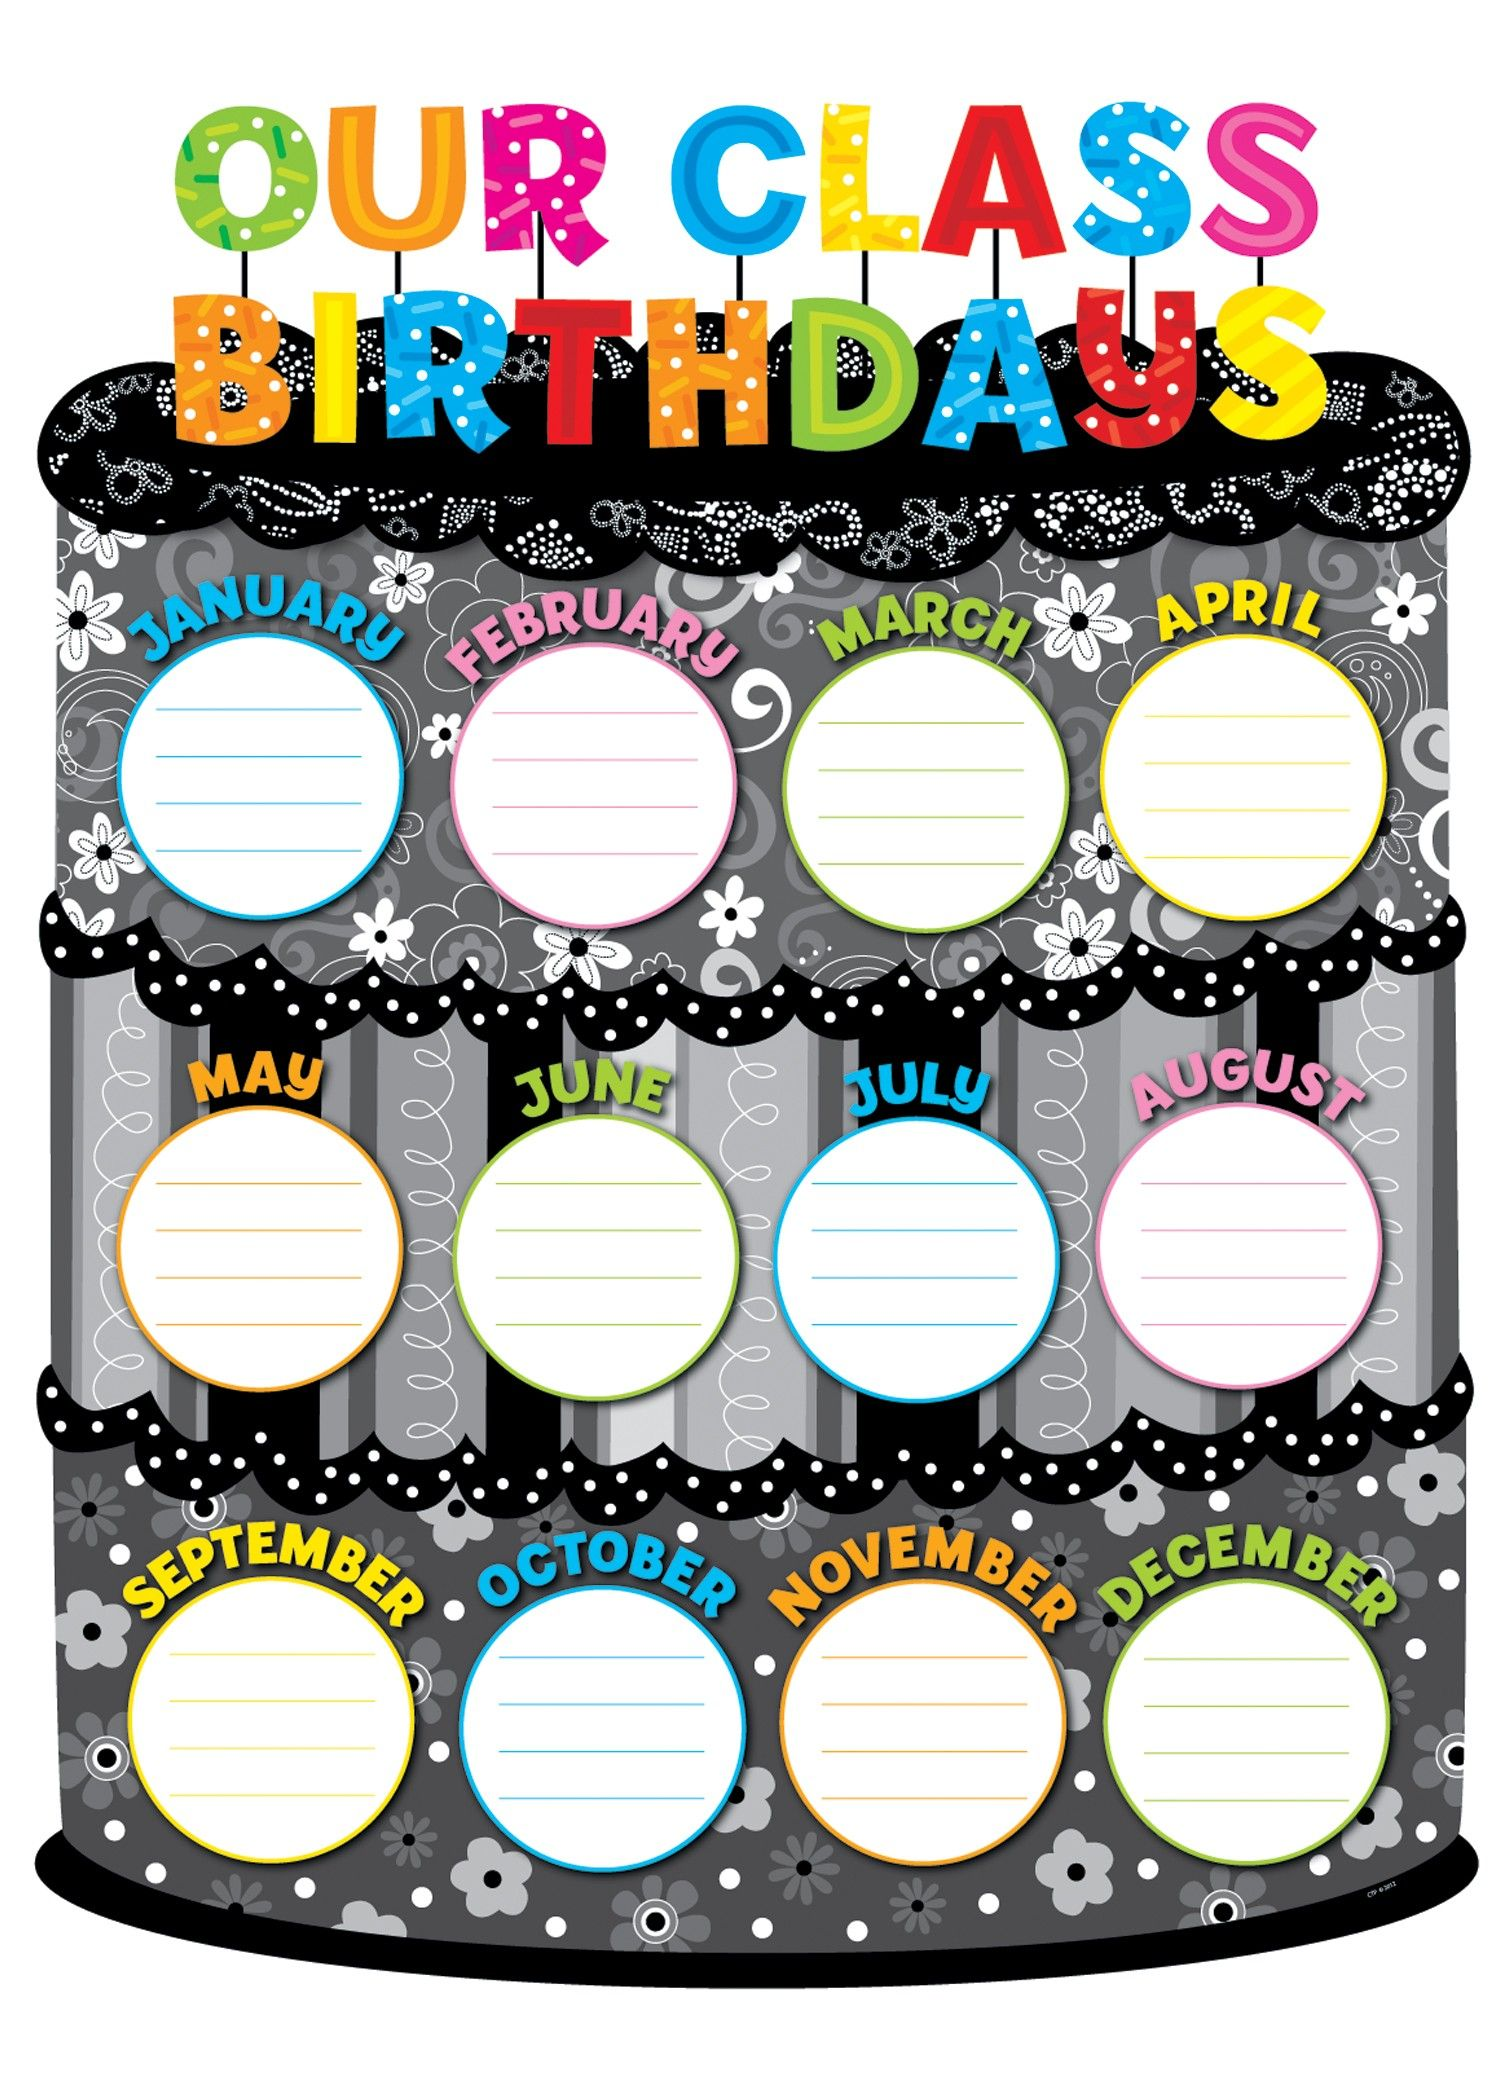 Classroom Birthday Ideas : Our class birthdays chart classroom displays birthday